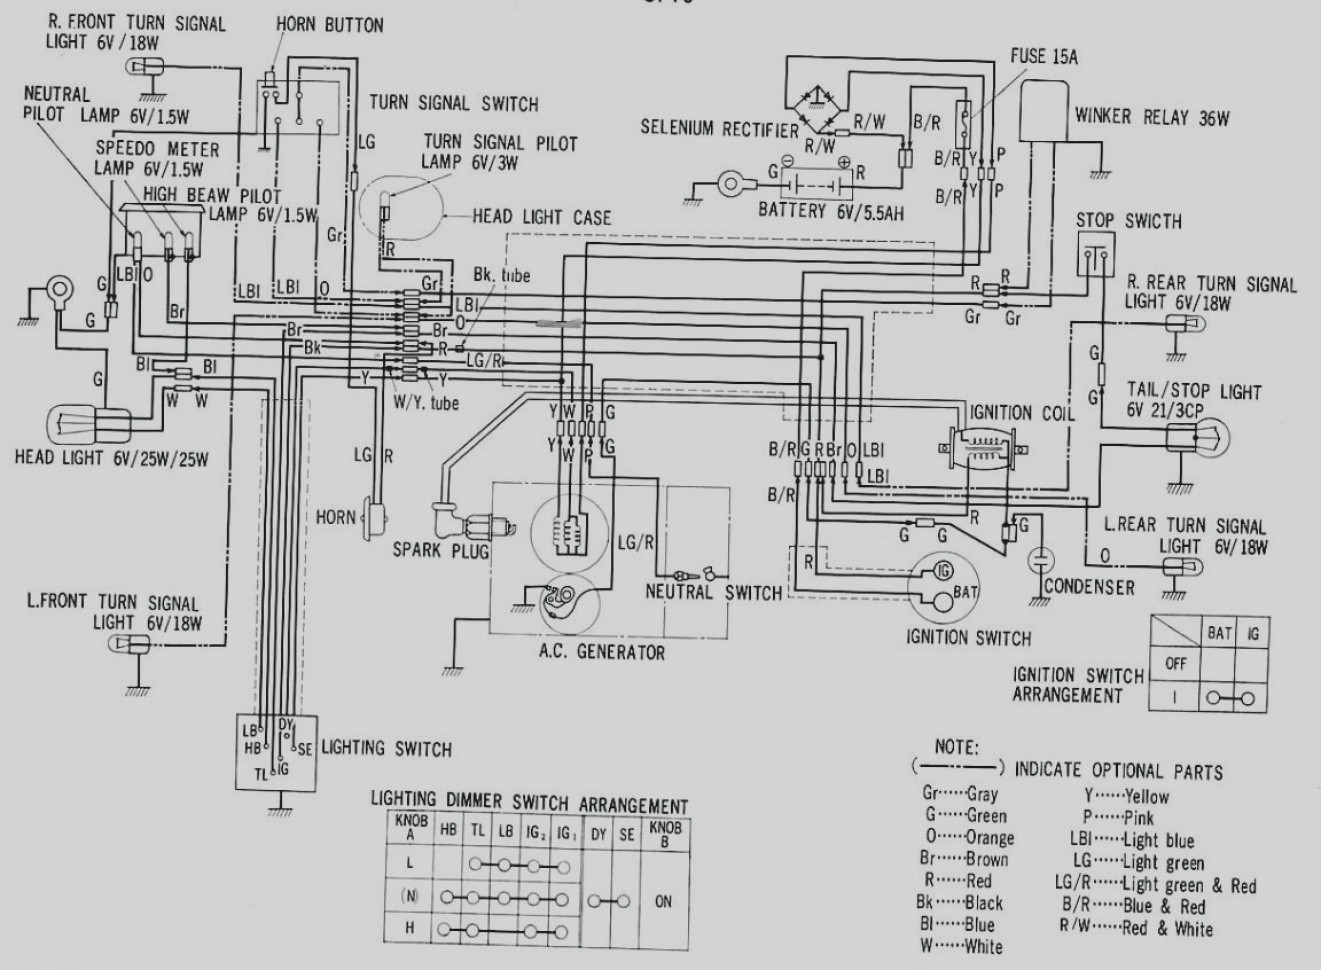 [DIAGRAM] 1997 Yamaha Kodiak Atv Wiring Diagram FULL